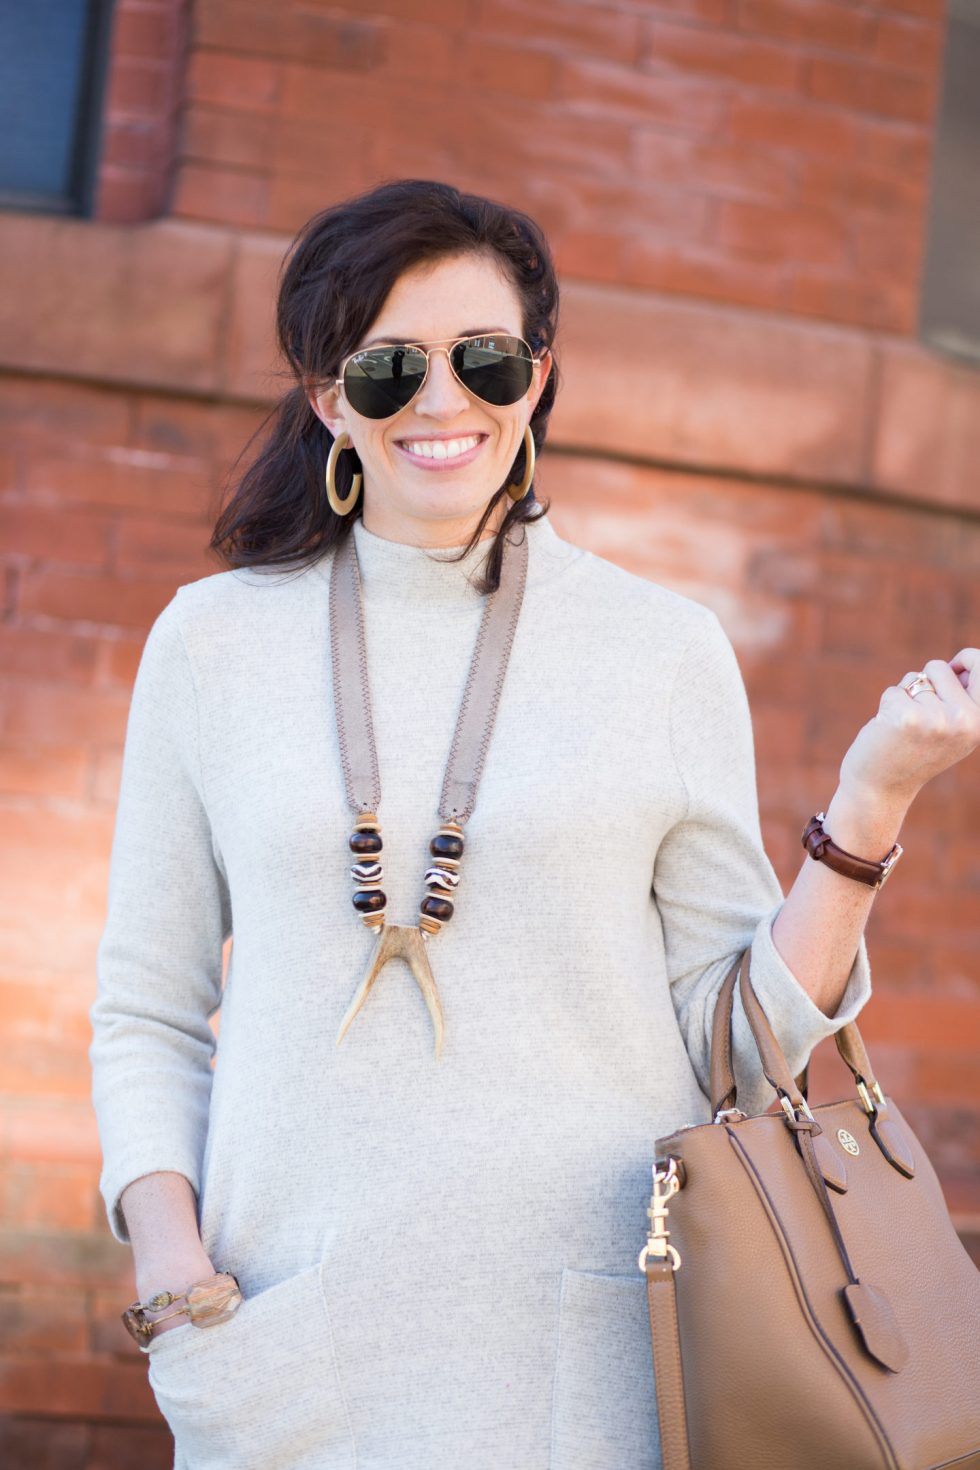 Neutral Dress + Over the Knee Boots - I'm Fixin' To - @mbg0112